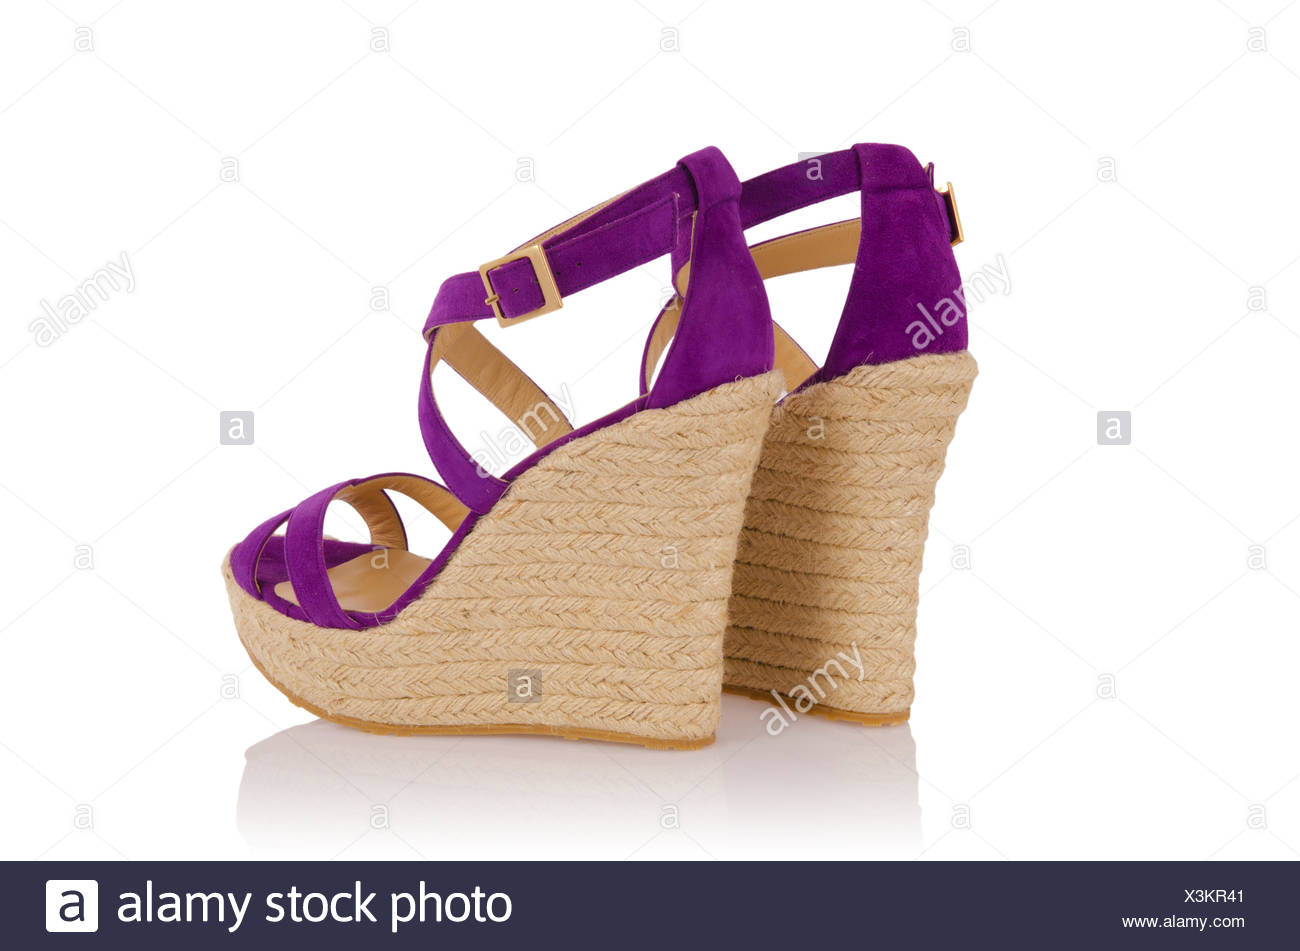 19e130d5bac Nice woman shoes isolated on white Stock Photo  277645089 - Alamy